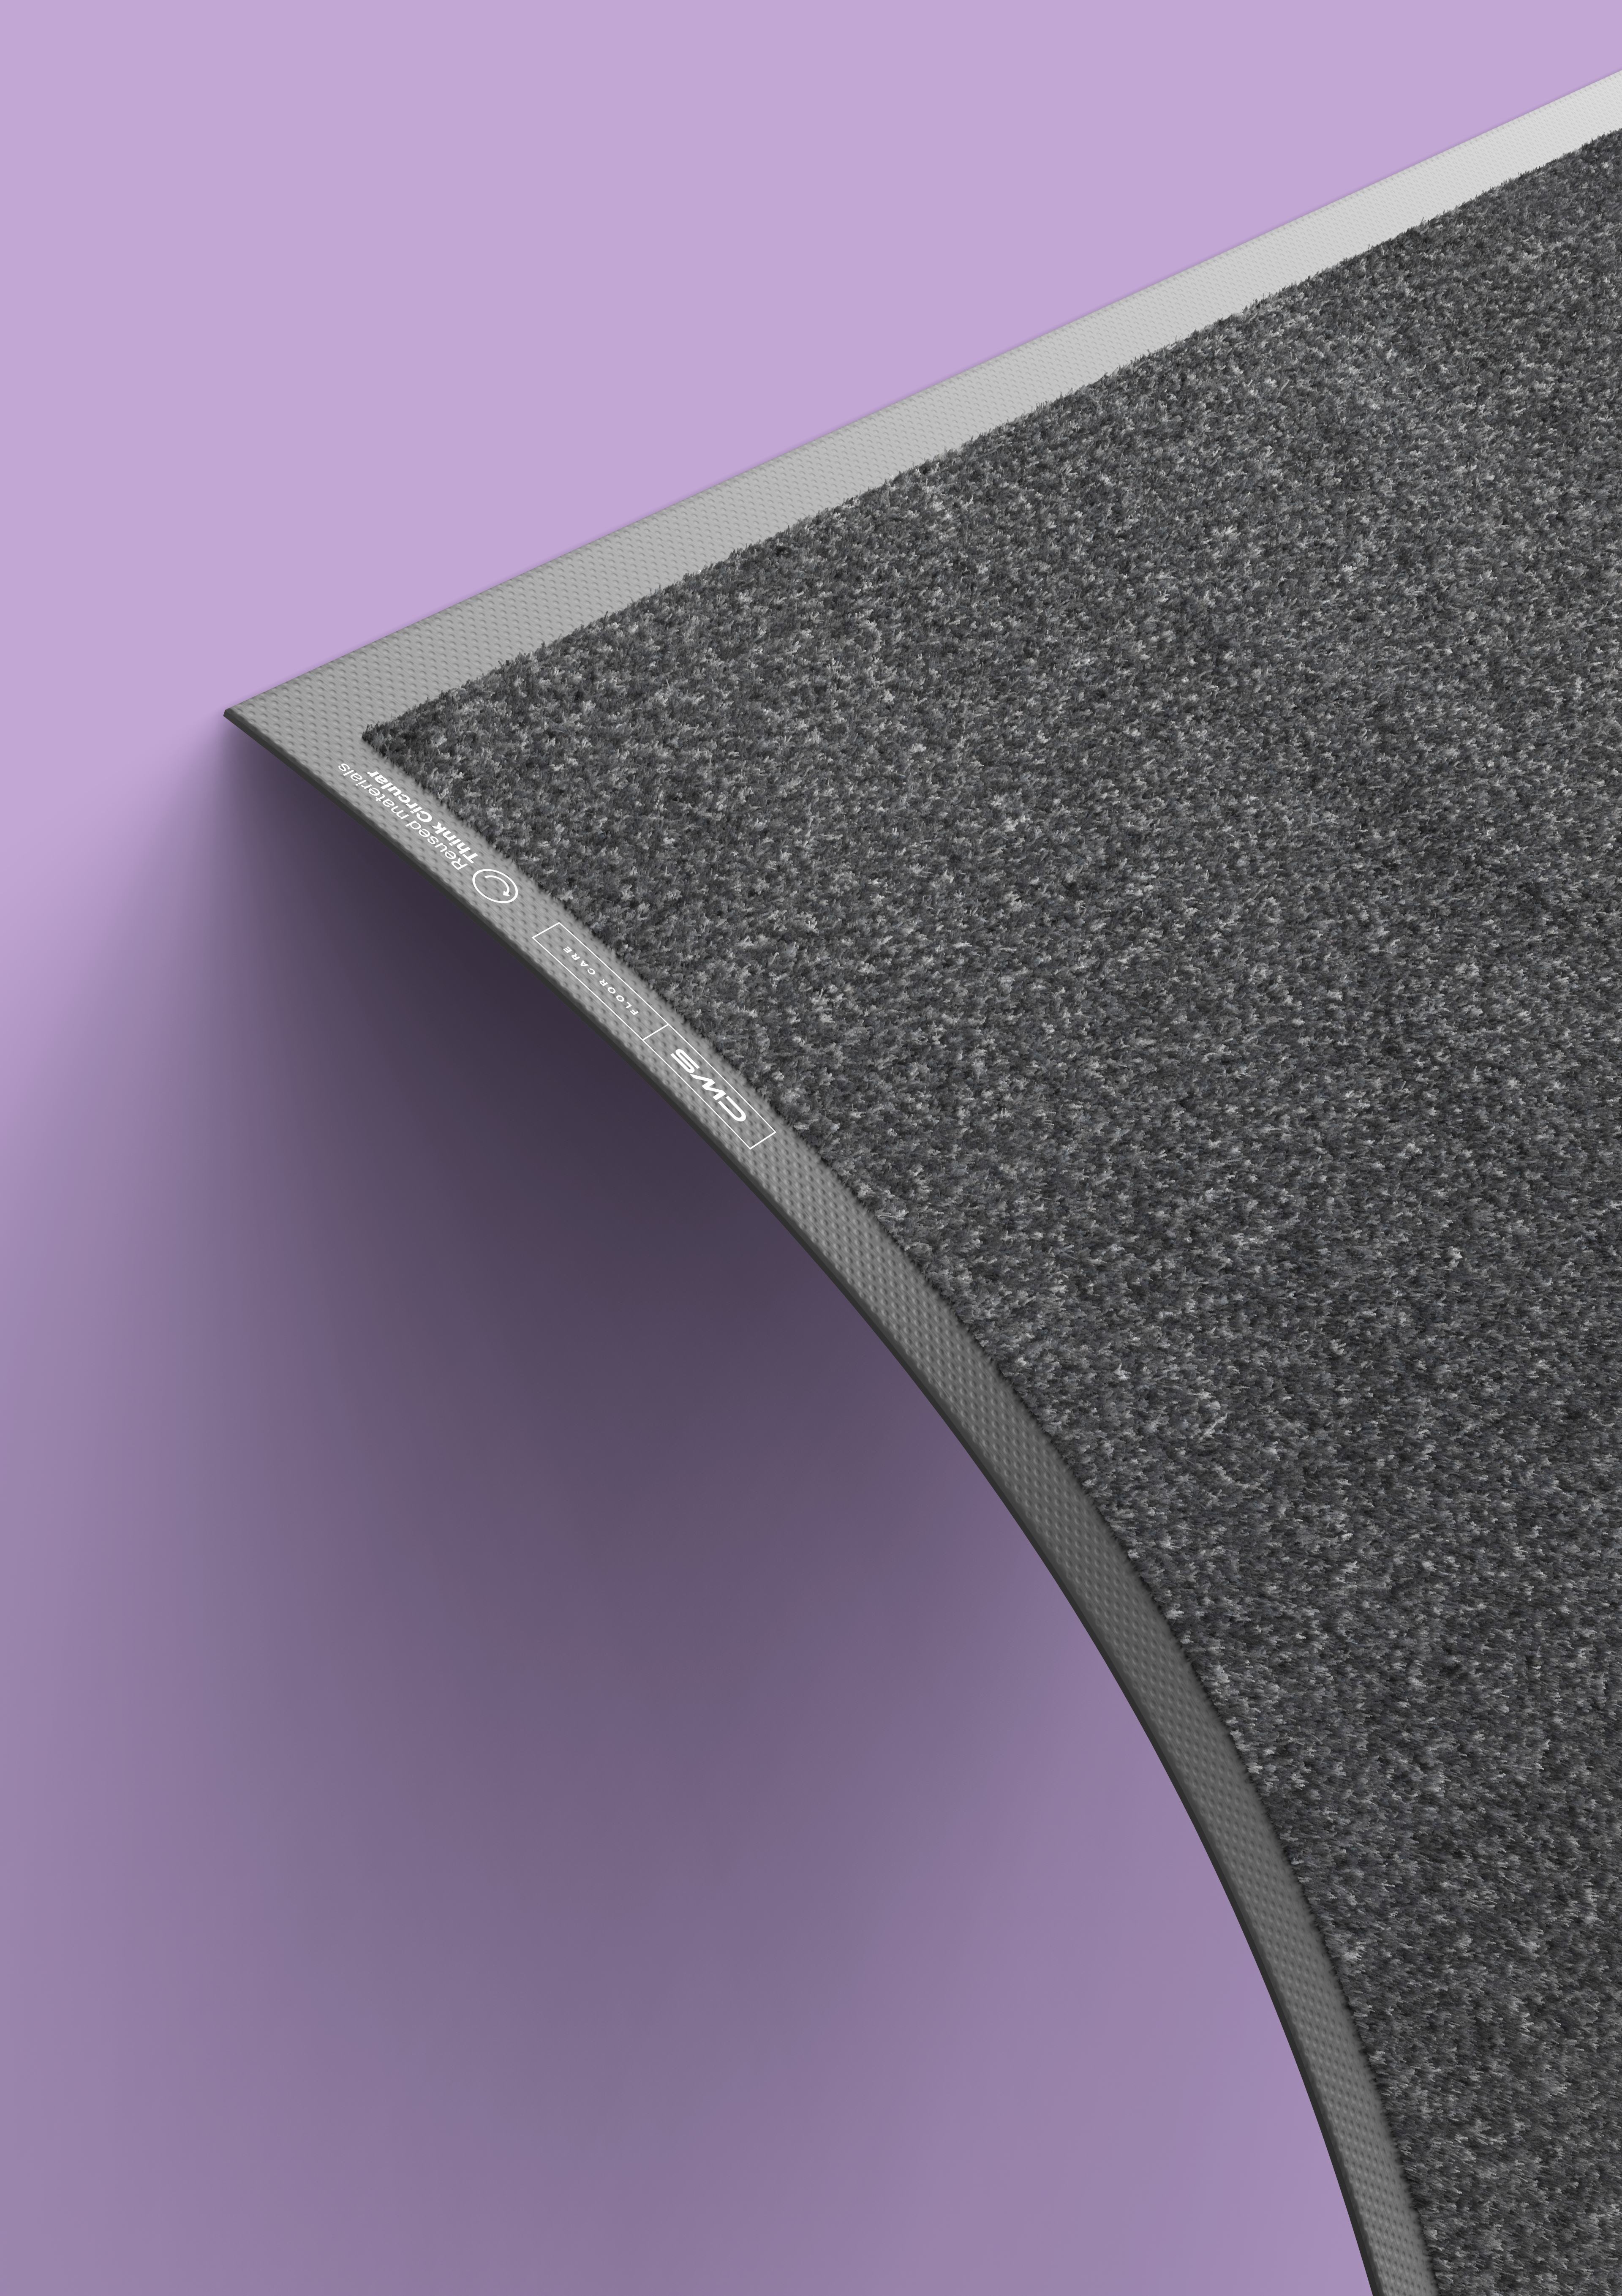 CWS GreenMat in black with purple background